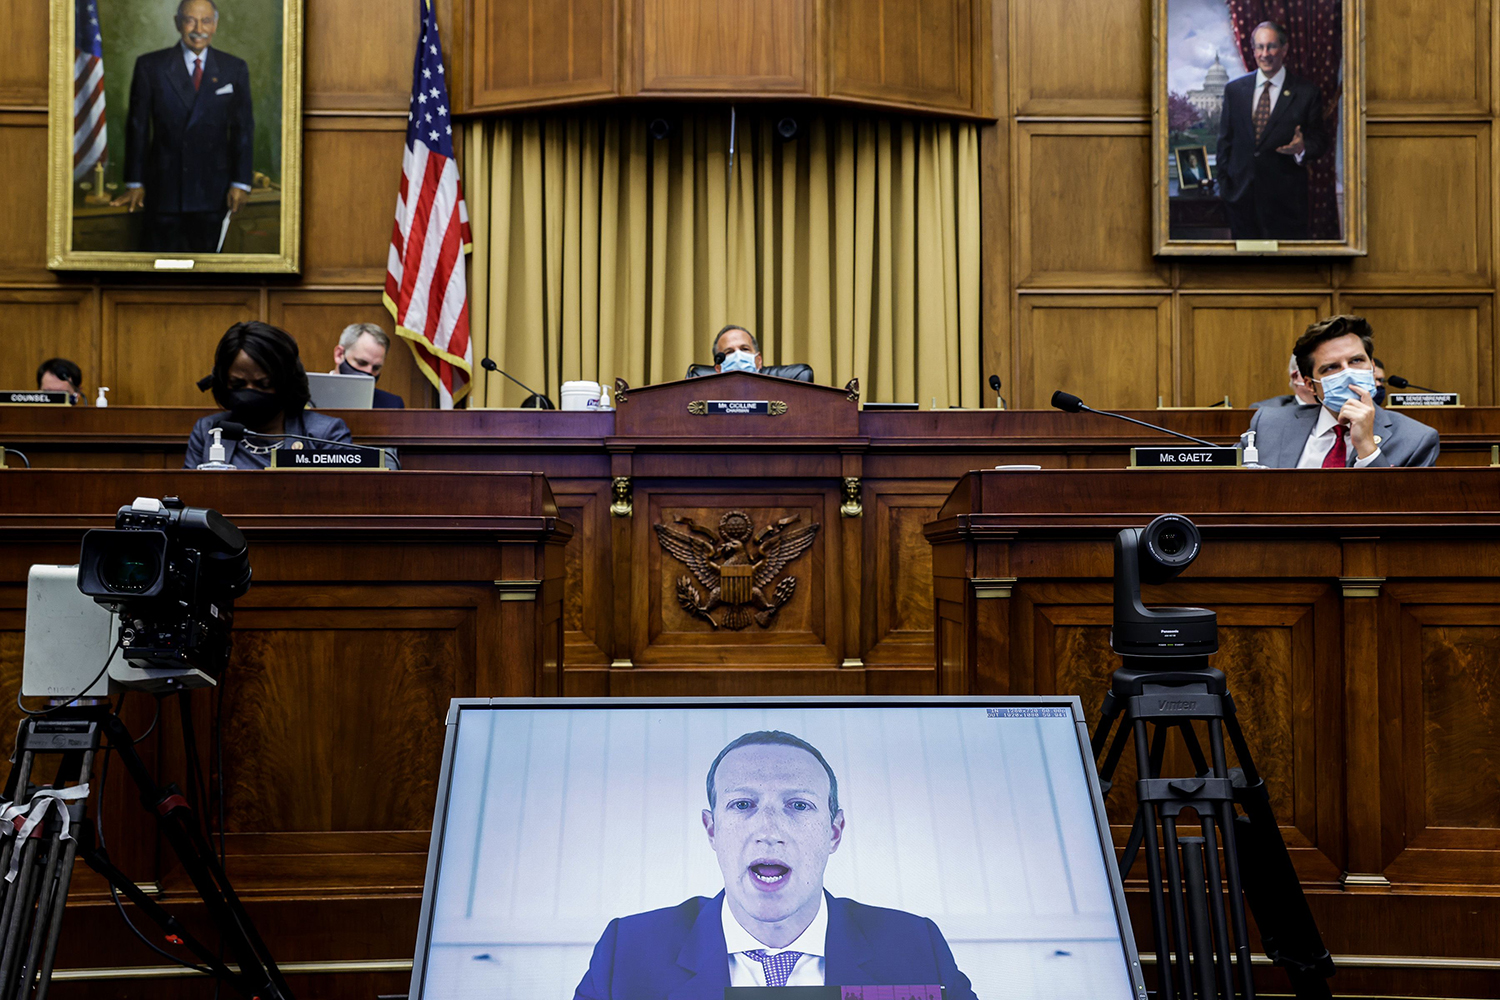 Facebook CEO Mark Zuckerberg testifies before the House Judiciary Subcommittee on Capitol Hill in Washington on July 29. GRAEME JENNINGS/POOL/AFP via Getty Images